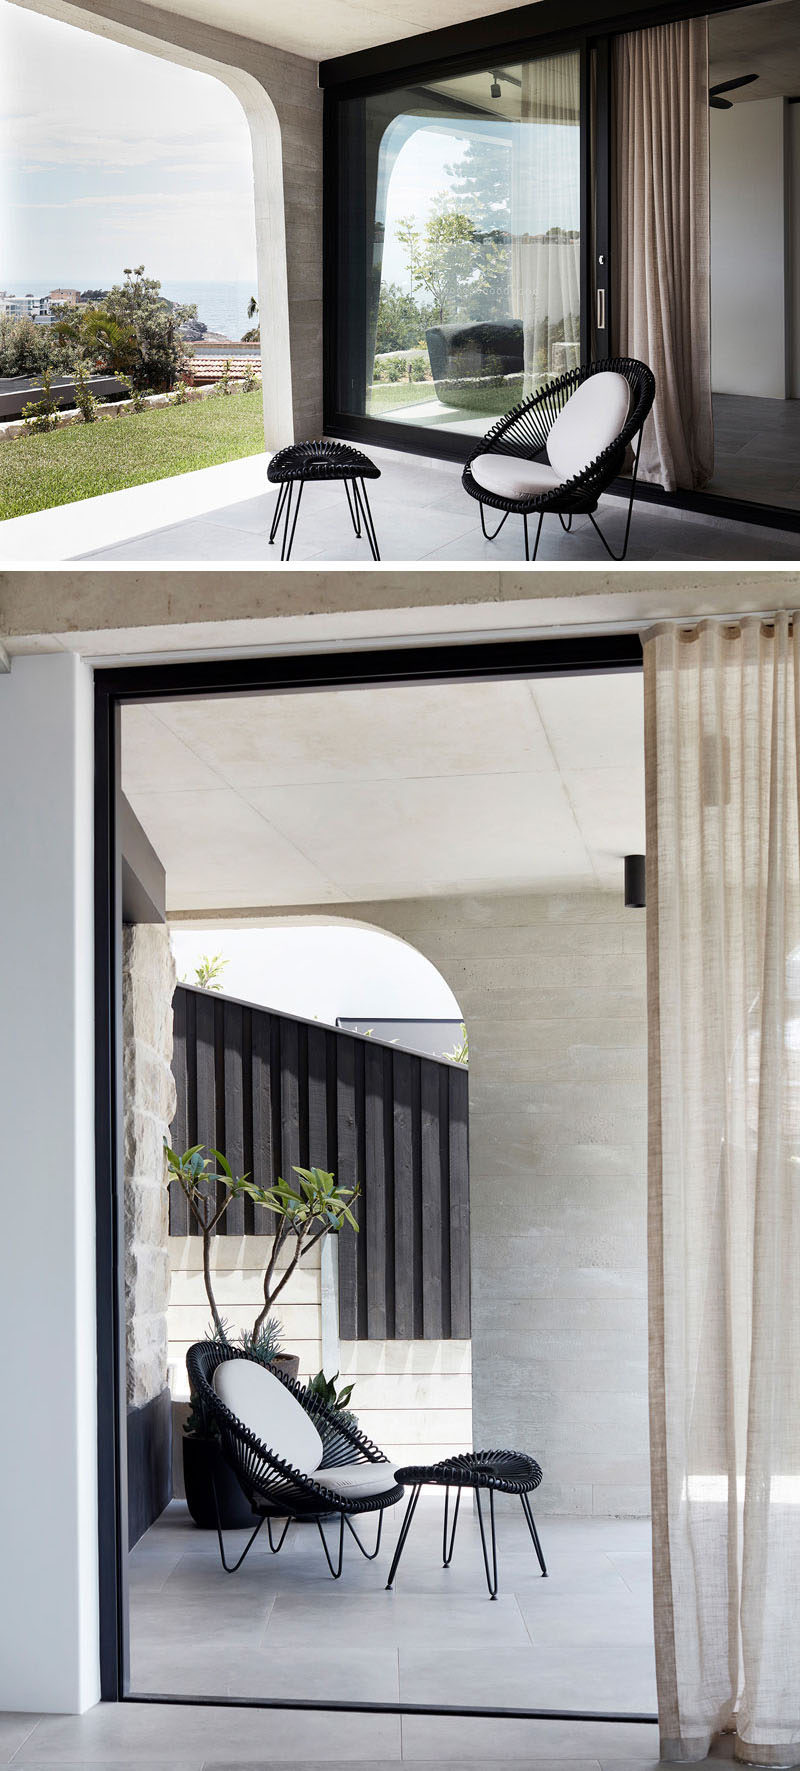 This modern concrete house has a small covered terrace that's positioned to take advantage of the ocean views. #Terrace